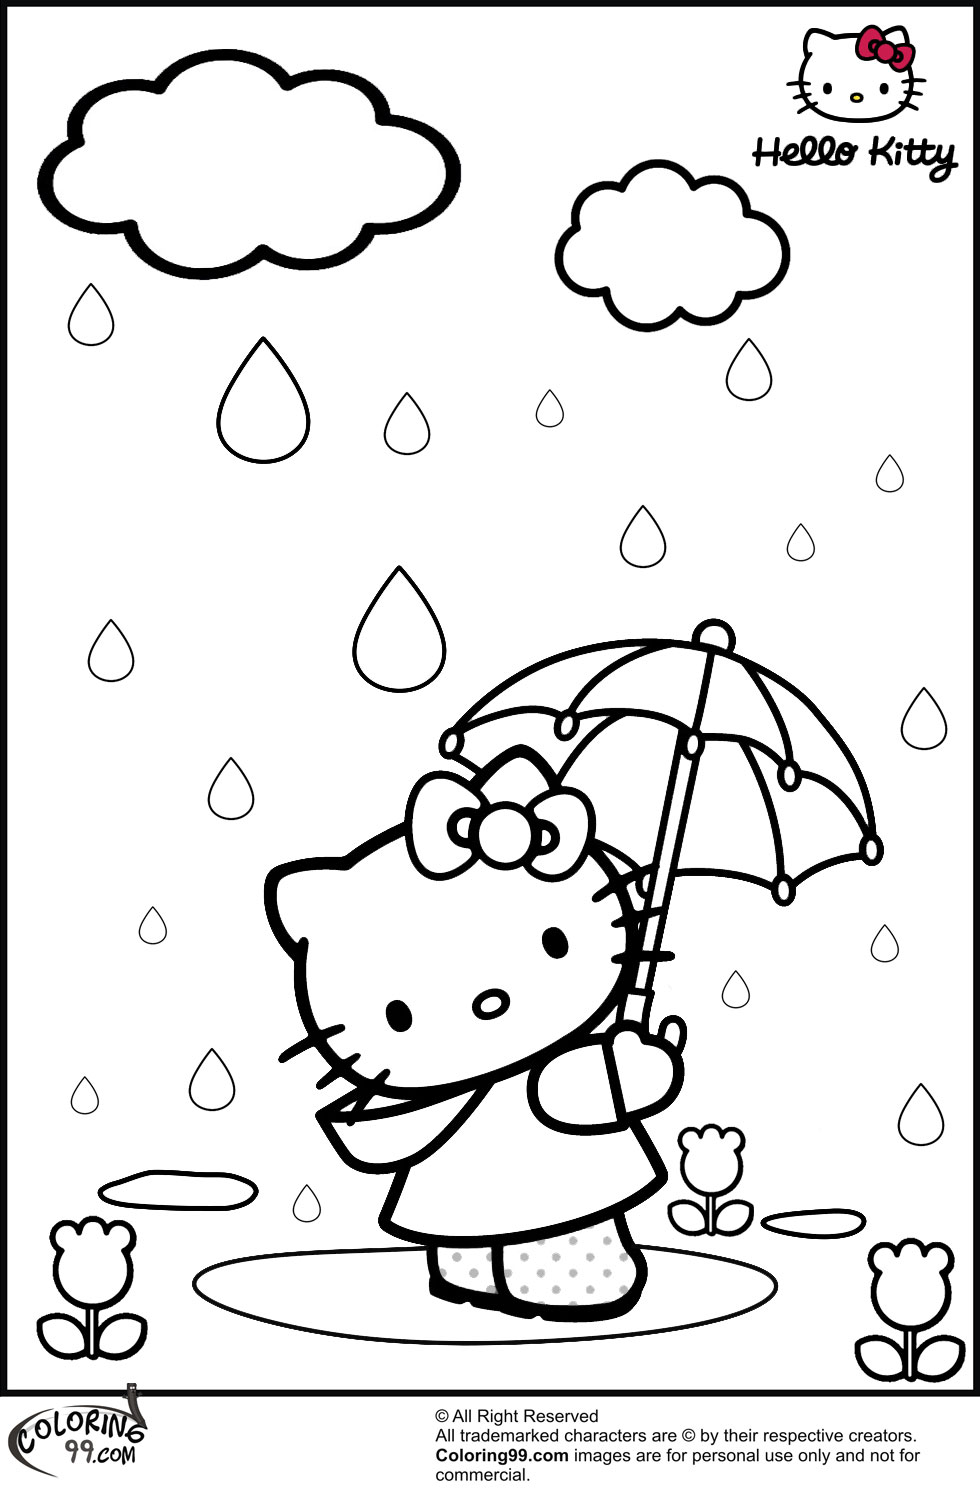 Hello kitty coloring pages team colors for Coloring pages of hello kitty